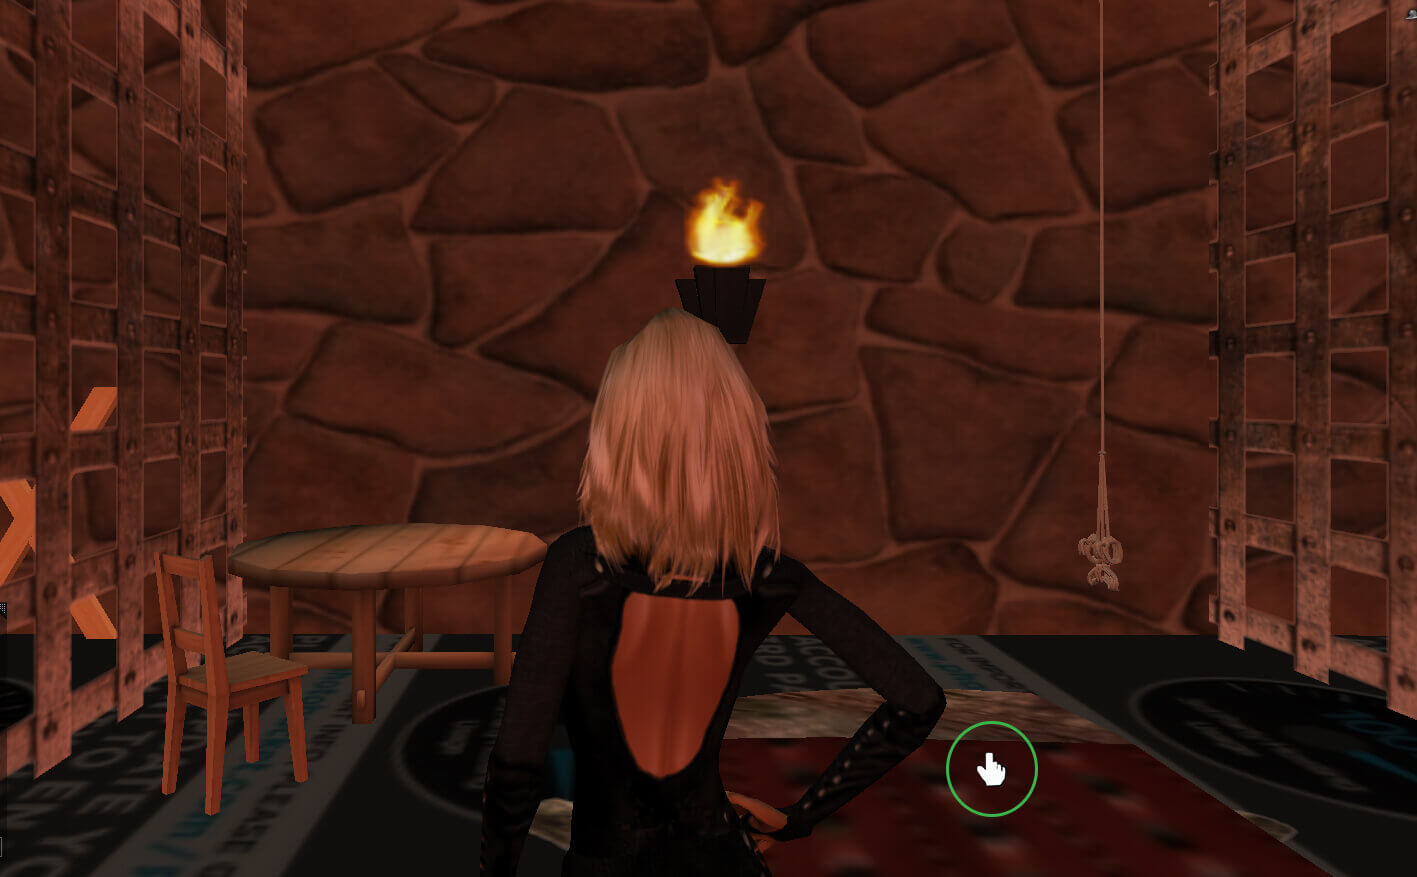 A cursor hand will appear in locations where you can have sex in the Red Light Center adult game.